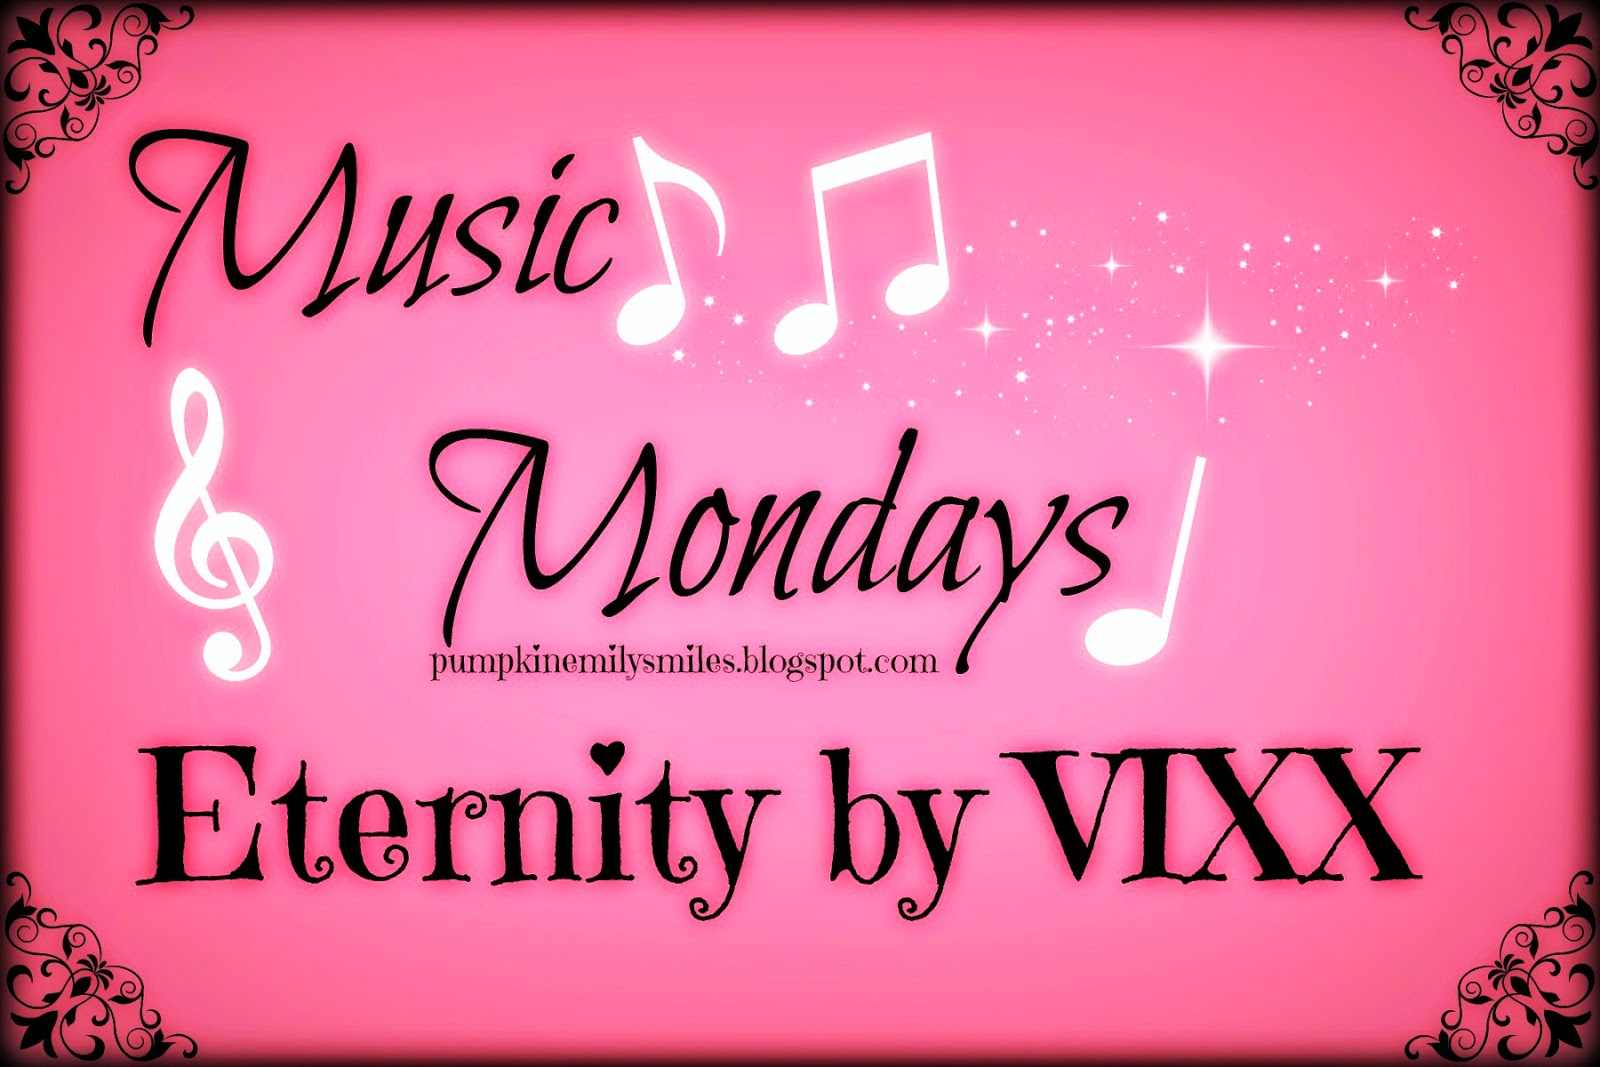 Music Mondays Eternity by VIXX